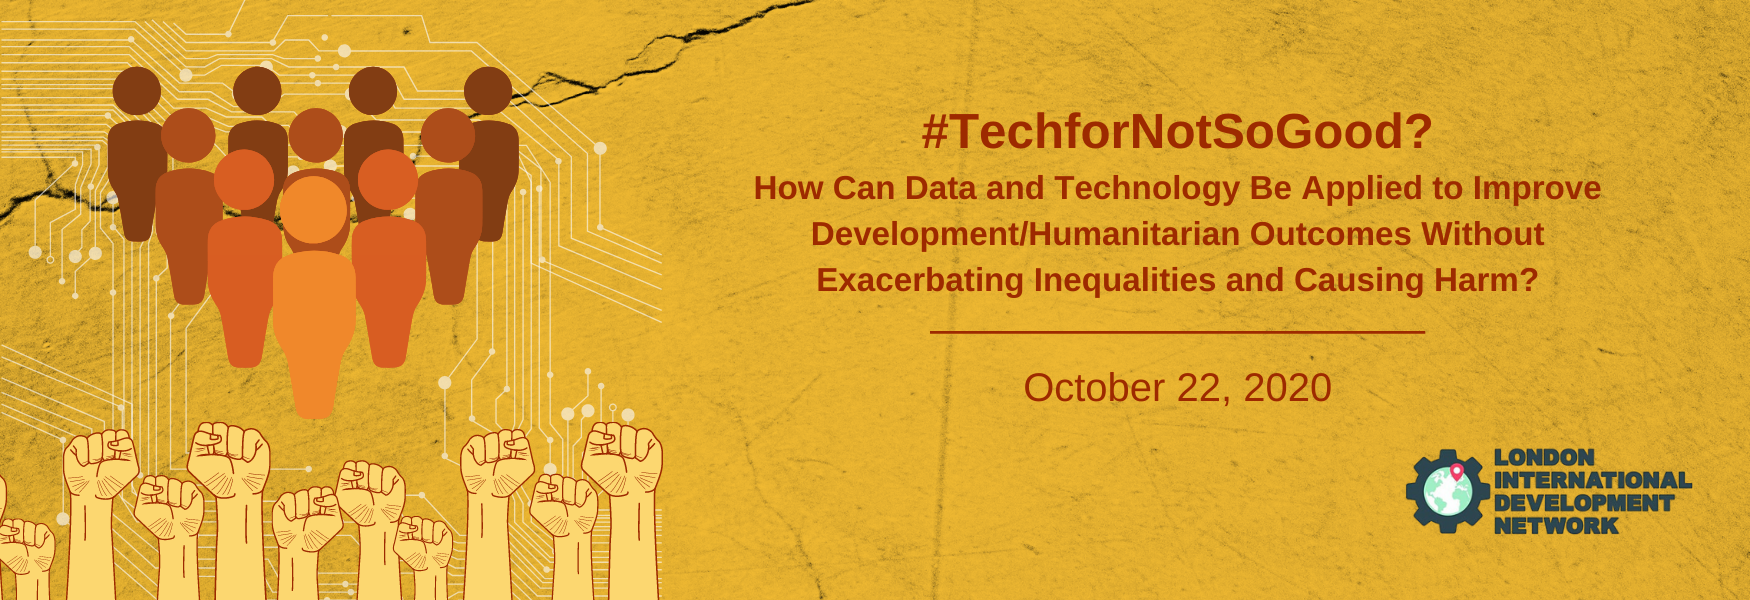 #TechforNotSoGood? How Can Data and Technology Be Applied to Improve Development/Humanitarian Outcomes Without Exacerbating Inequalities and Causing Harm?